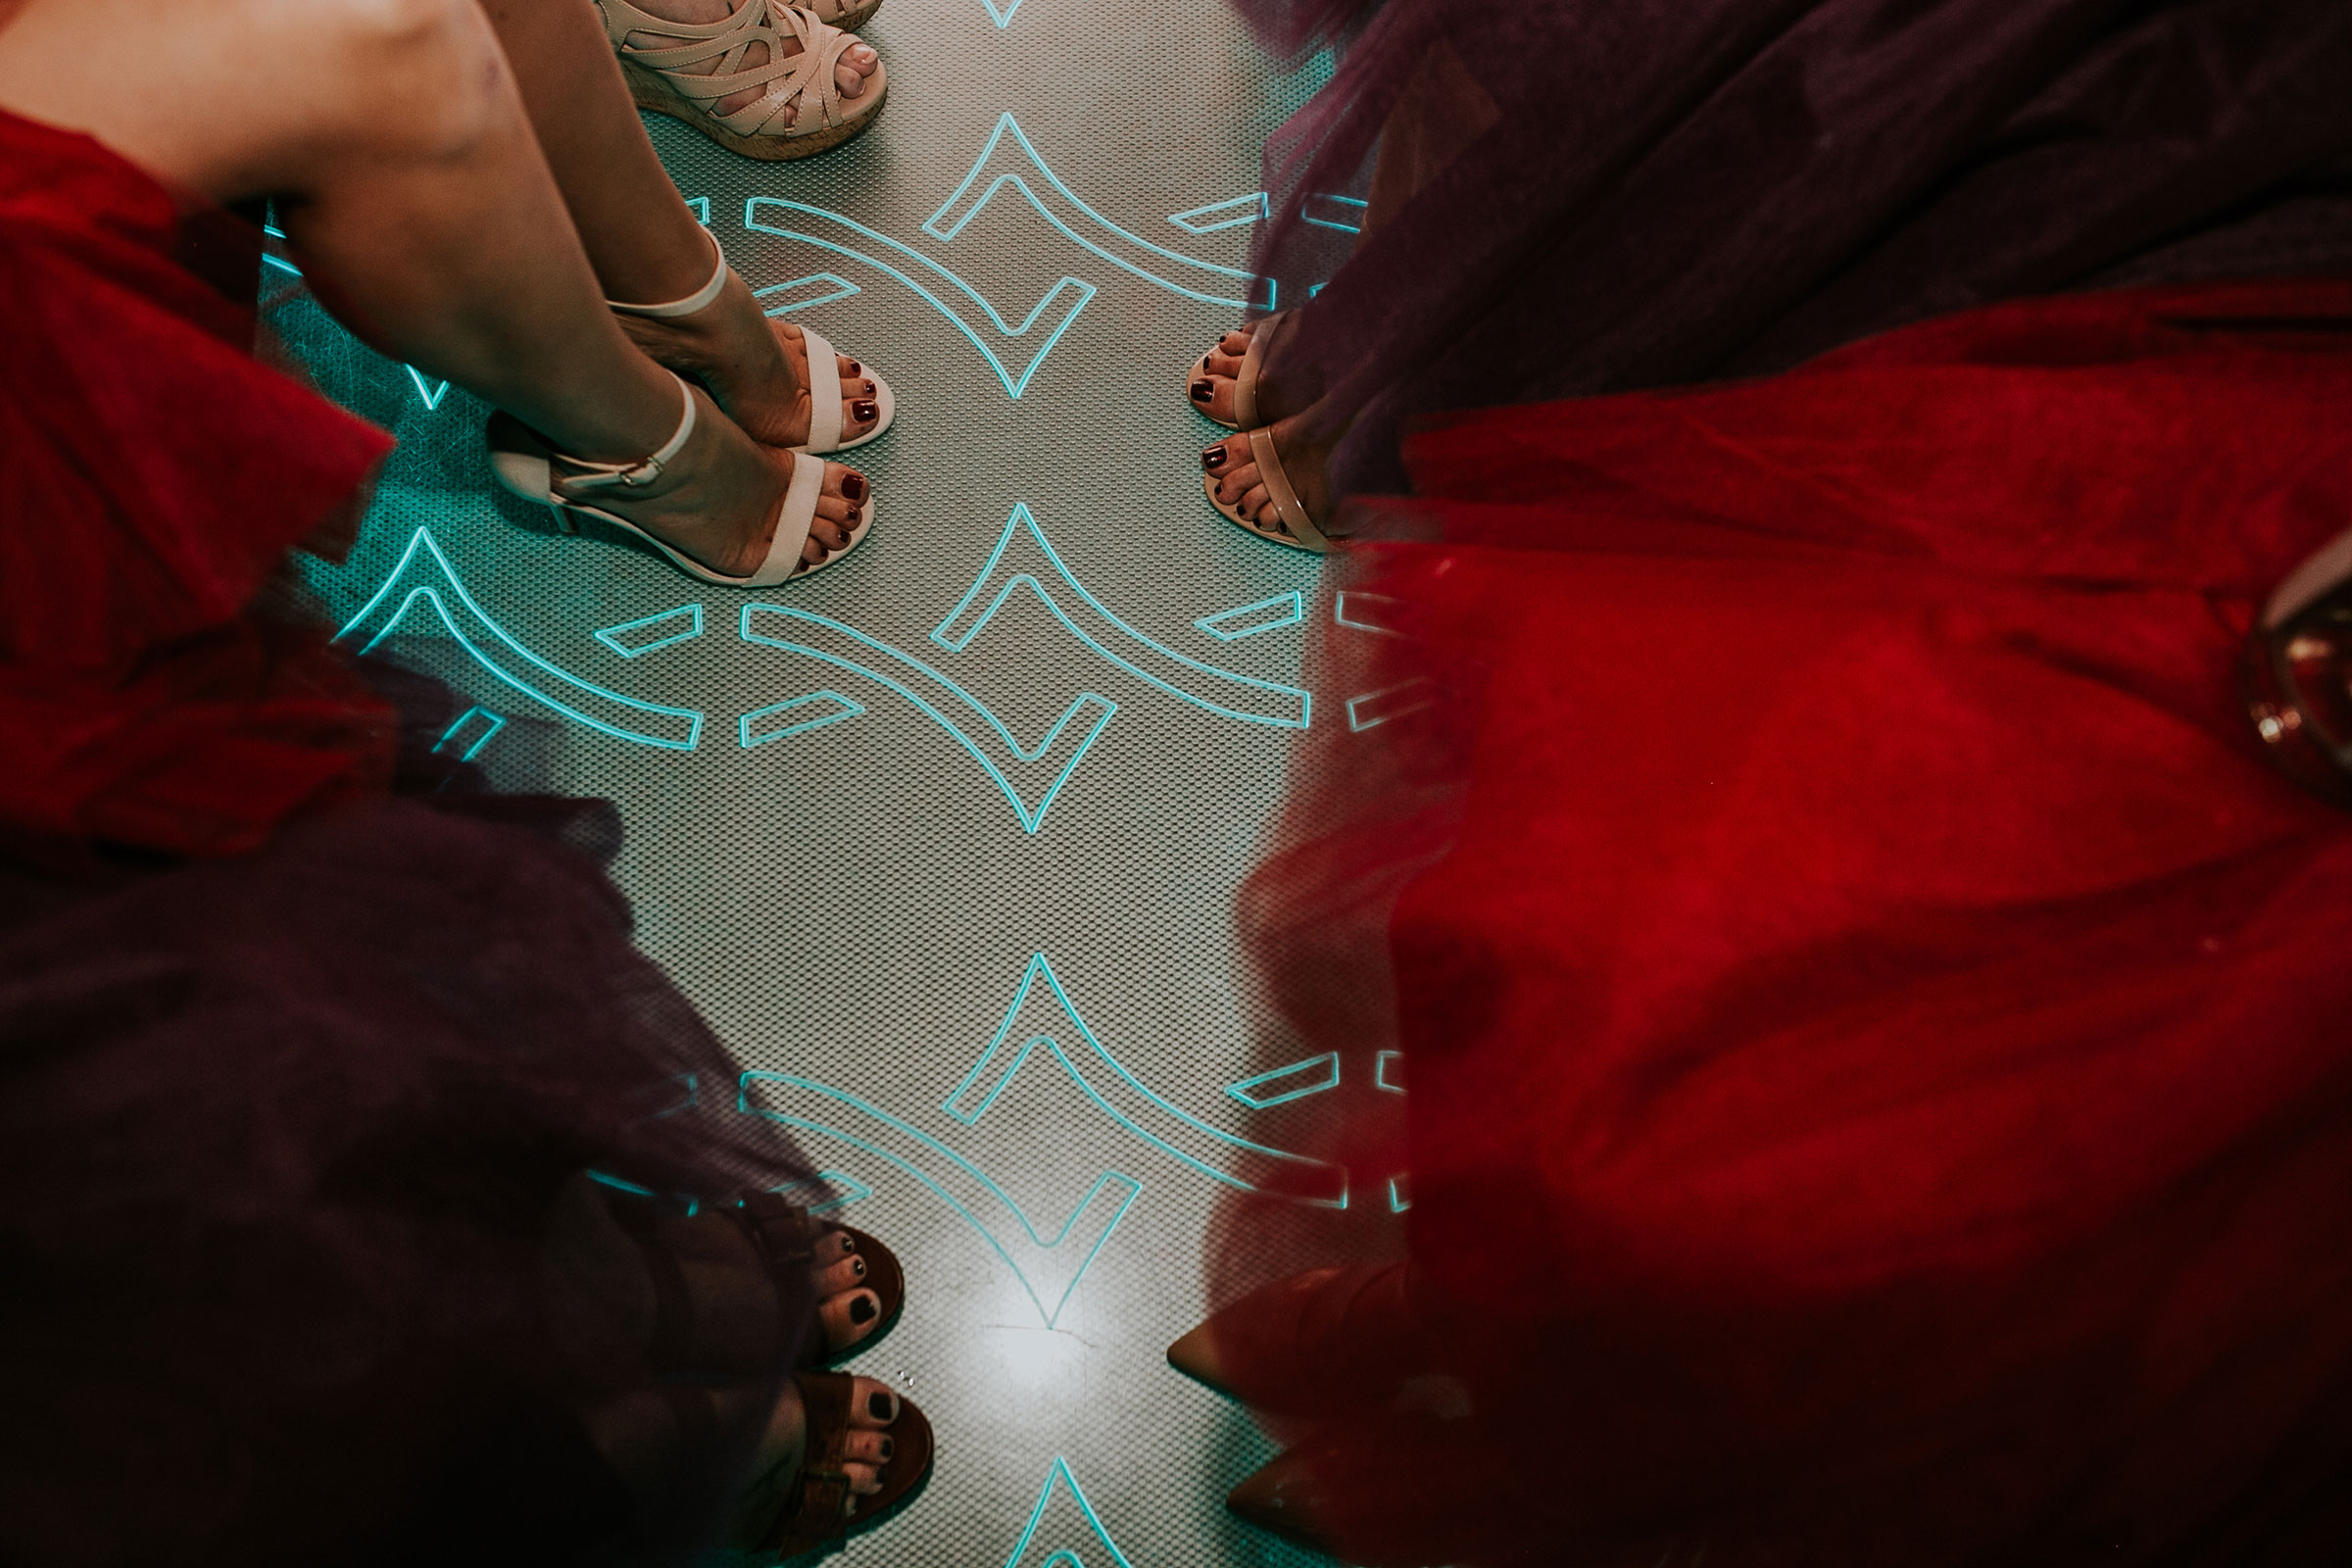 bridesmaids-shoes-on-bus-with-floor-lights-pella-plaza-desmoines-iowa-raelyn-ramey-photography.jpg